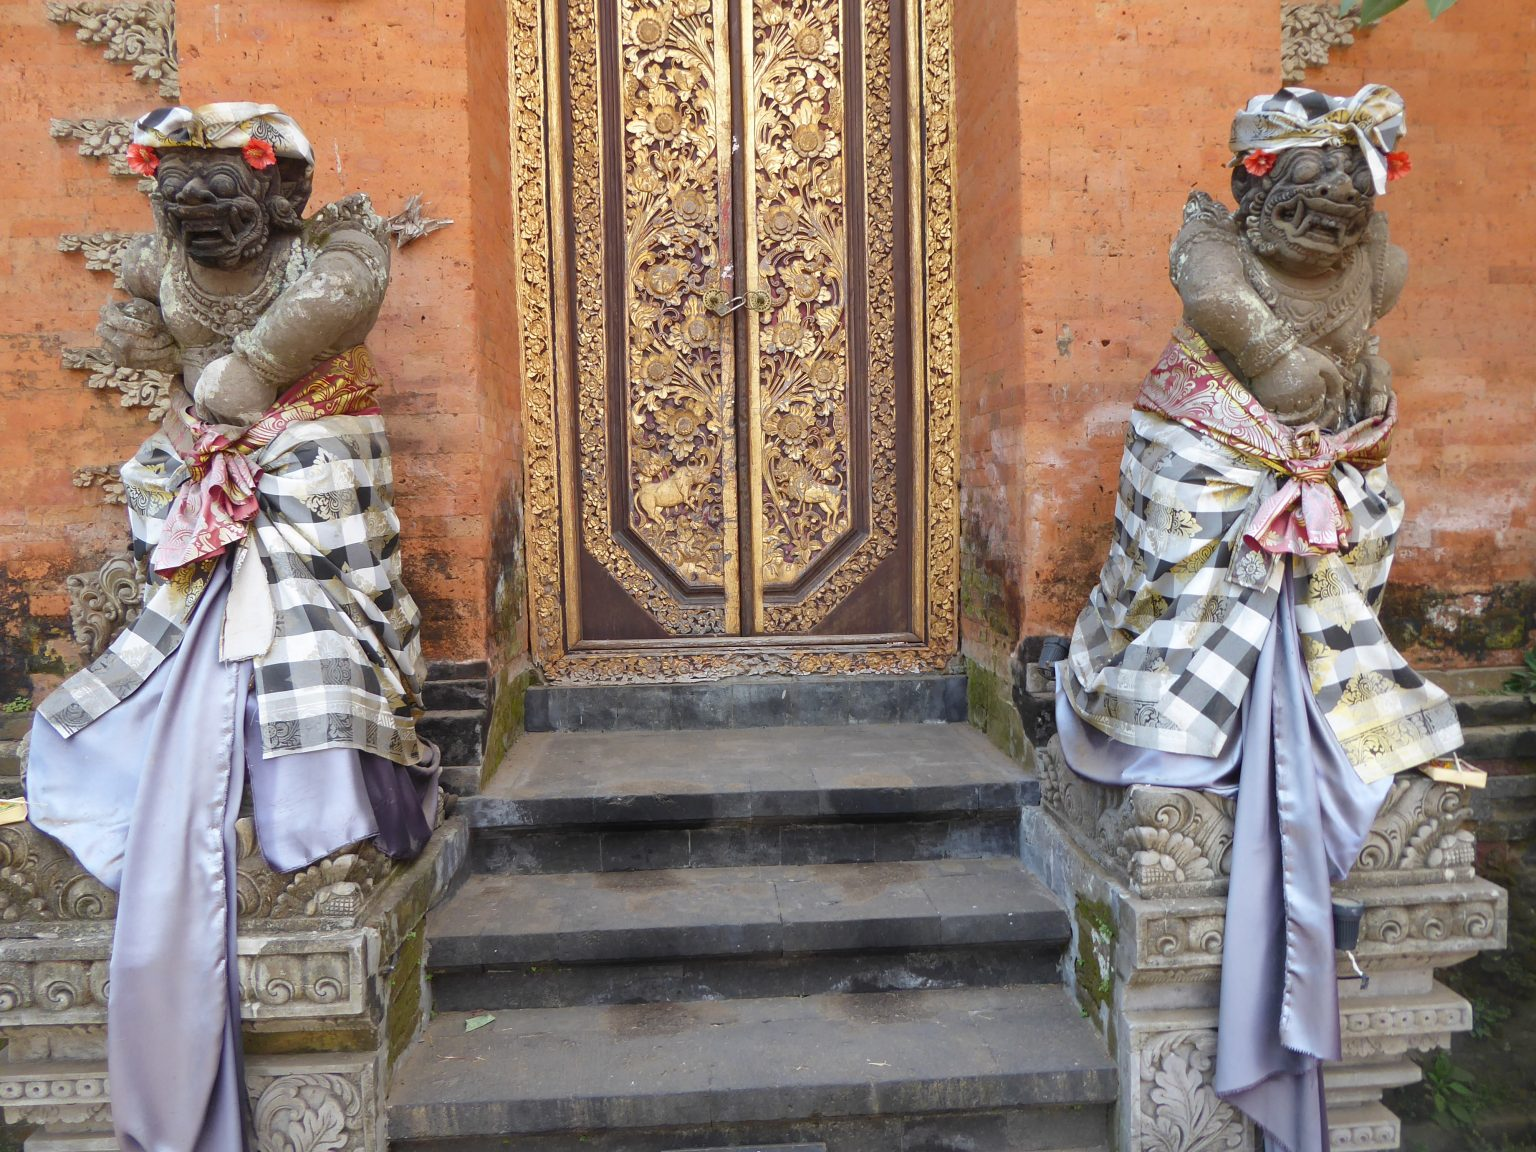 Inside Ubud Palace - 2 Hindu statues either side of a door